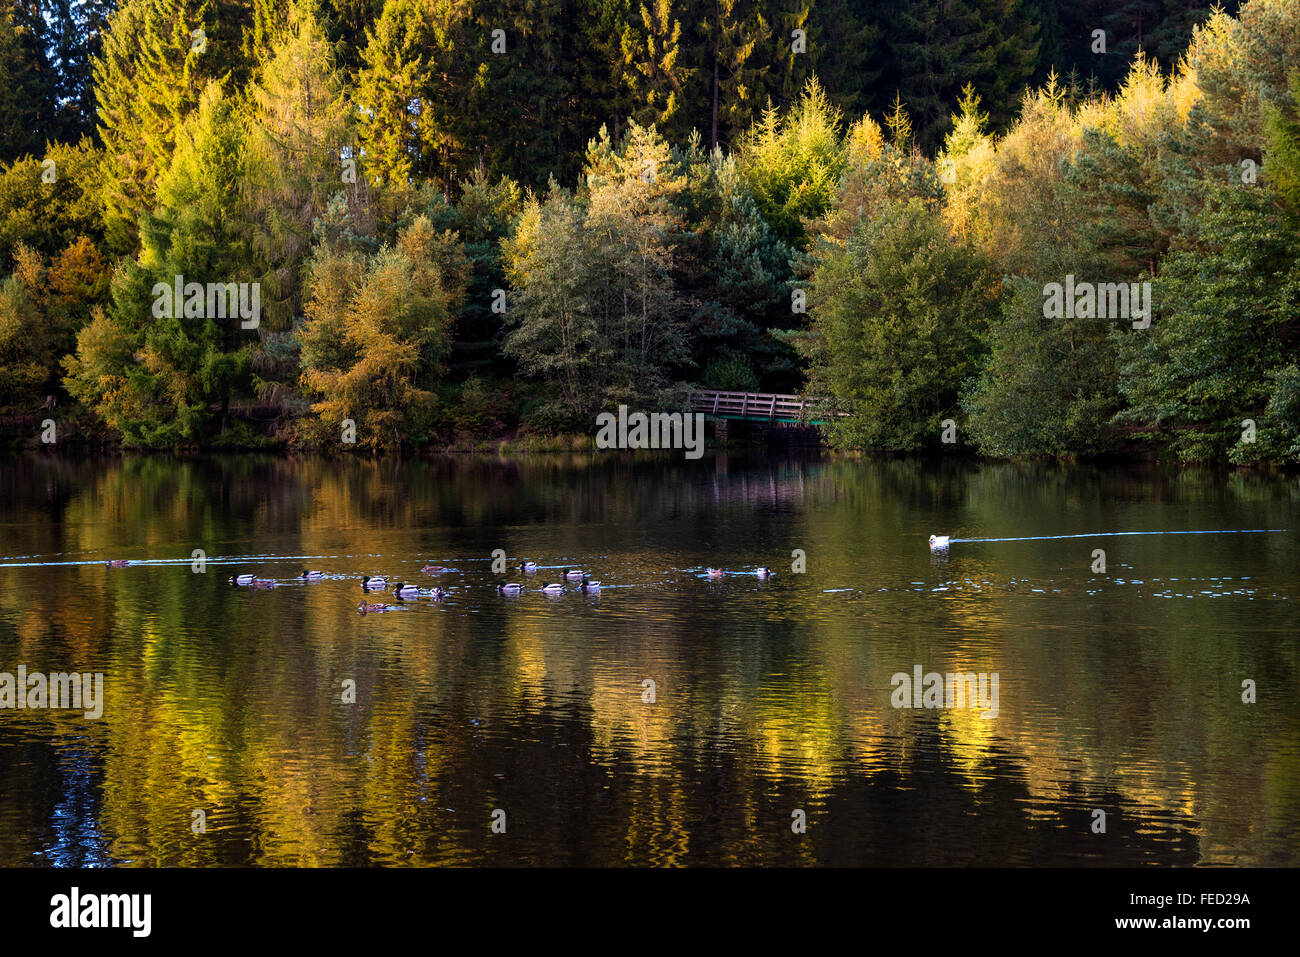 Mallards Pike Lake in the Forest of Dean, Gloucestershire, UK - Stock Image